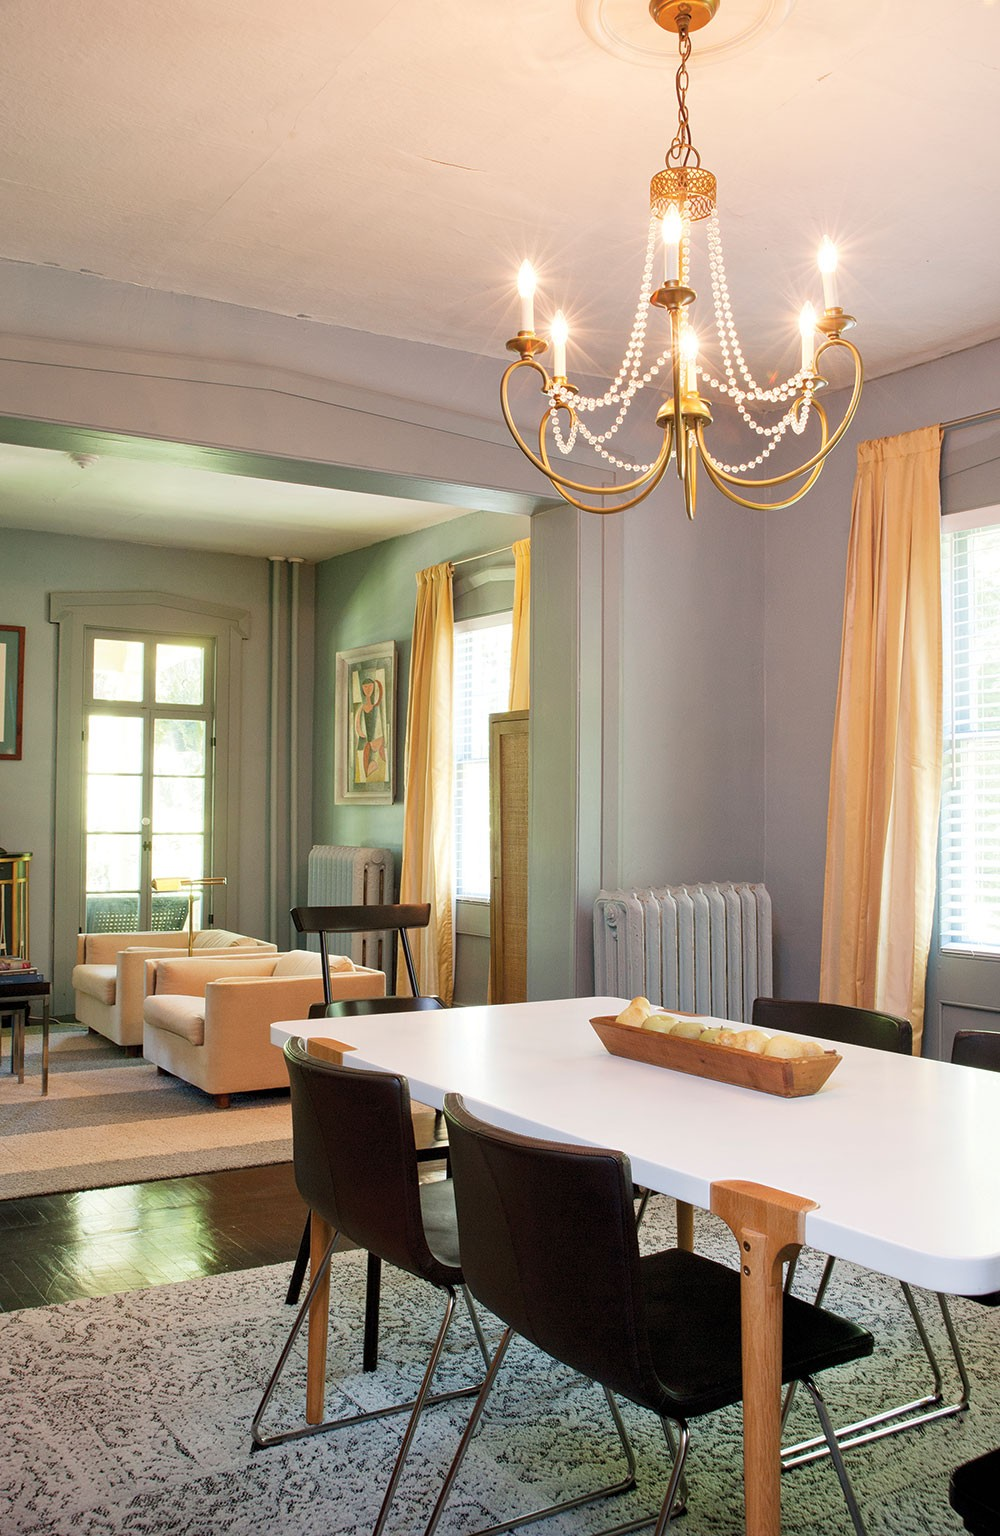 The home's sitting and dining rooms. Sexton painted all the floors by hand, crawling through the house with a two-wedge paint brush. - DEBORAH DEGRAFFENREID